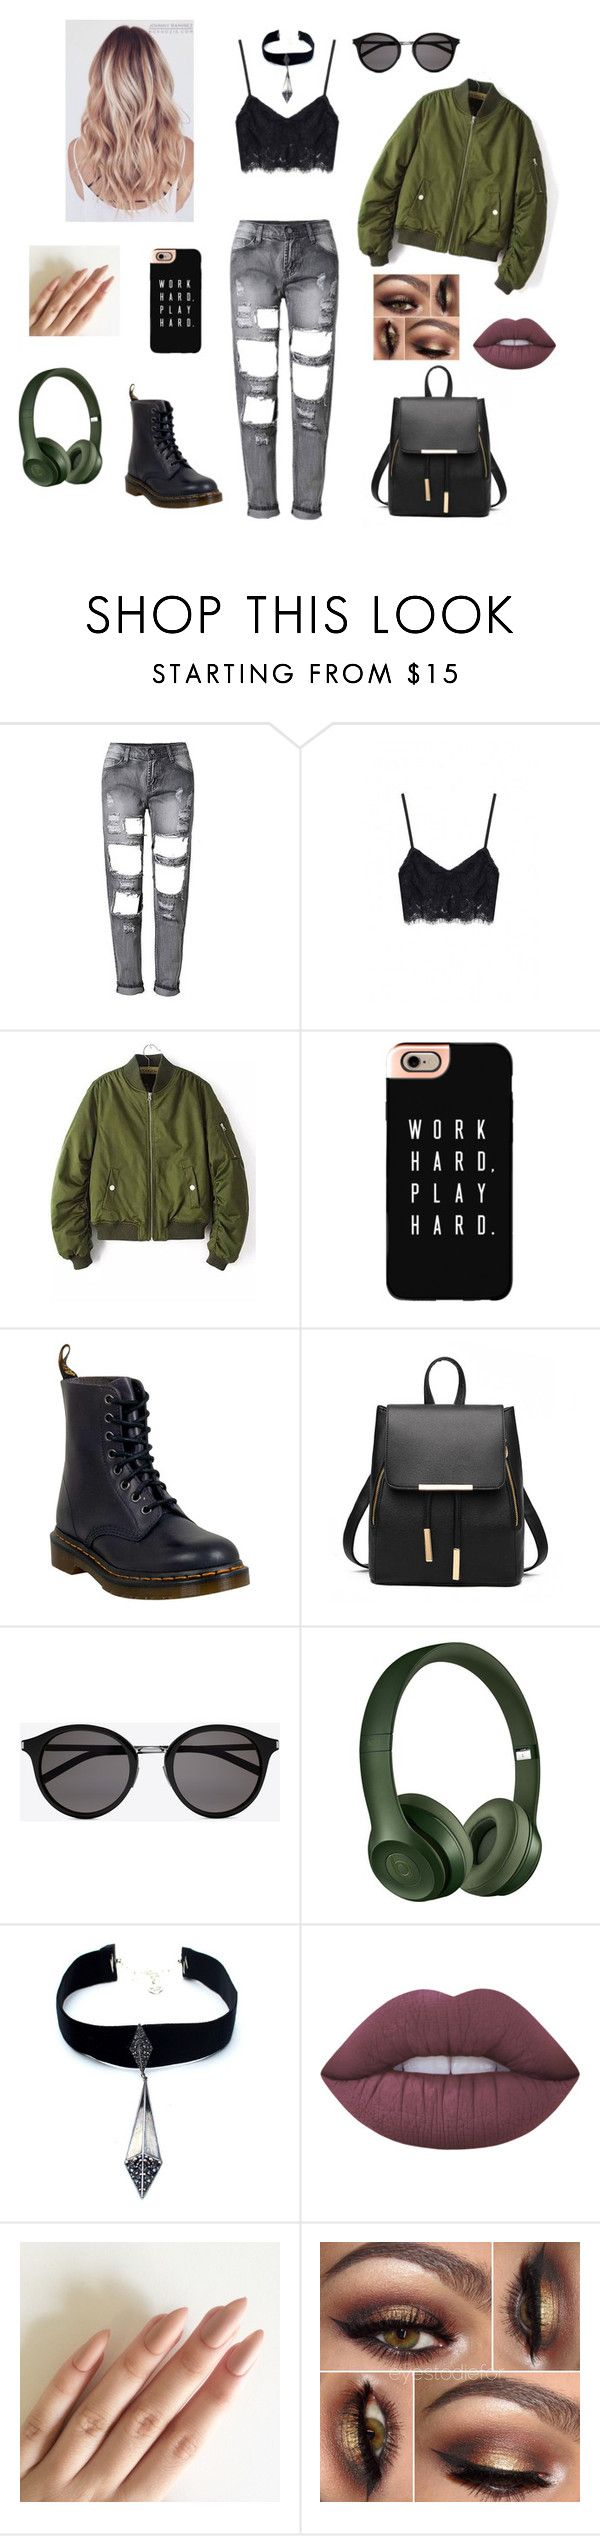 """Untitled #20"" by elenadisney on Polyvore featuring Casetify, Dr. Martens, Yves Saint Laurent, Beats by Dr. Dre, Child Of Wild and Lime Crime"